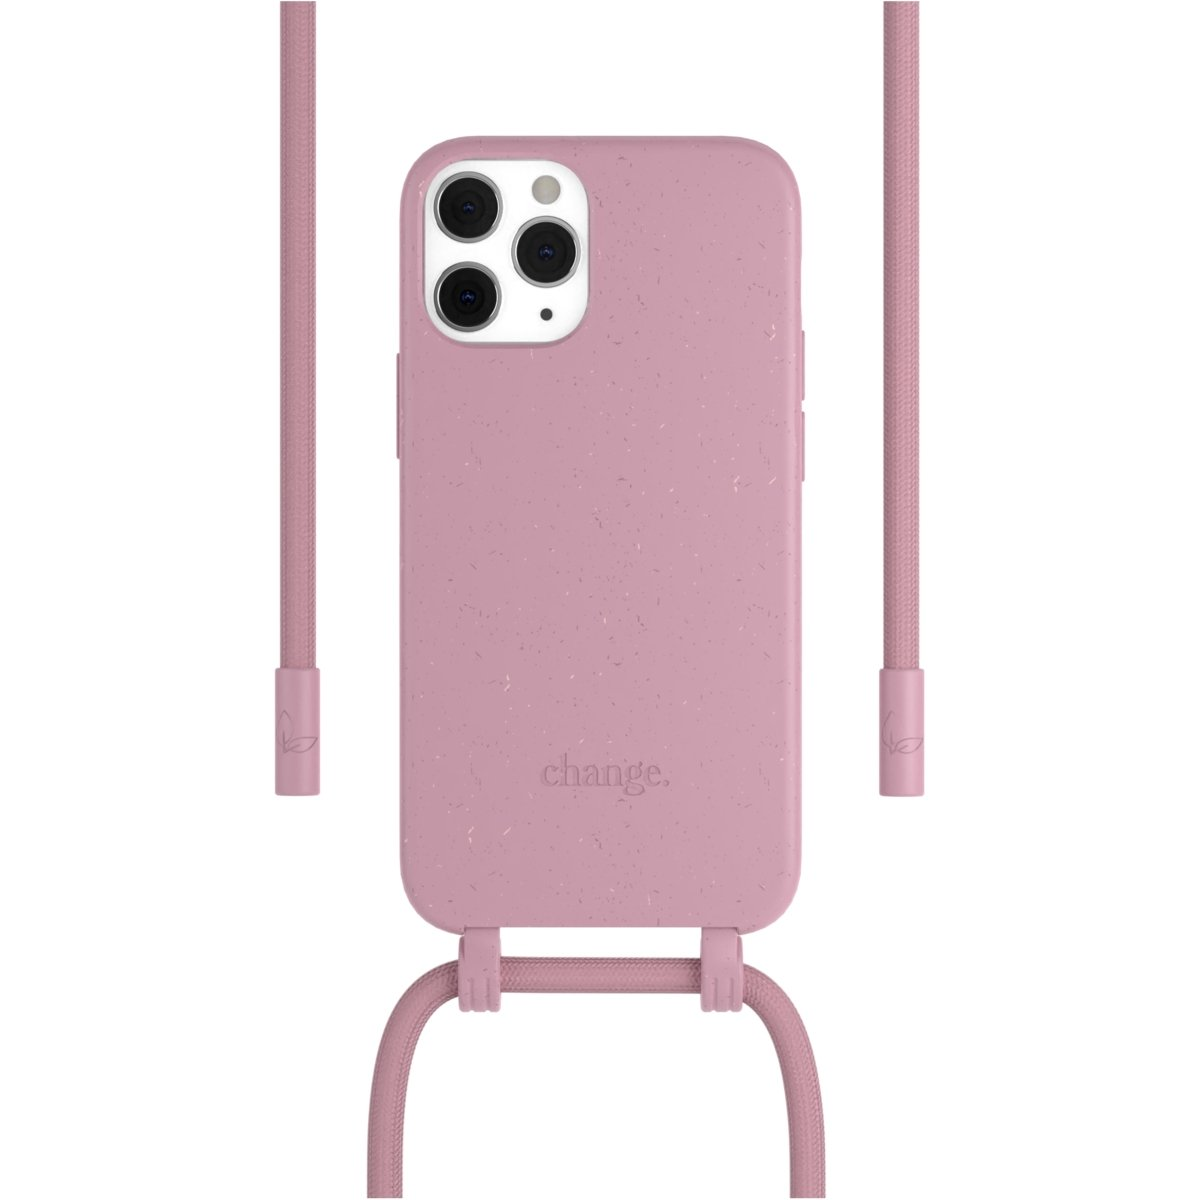 Woodcessories Change Case AM iPhone 12 Pro Max - pink